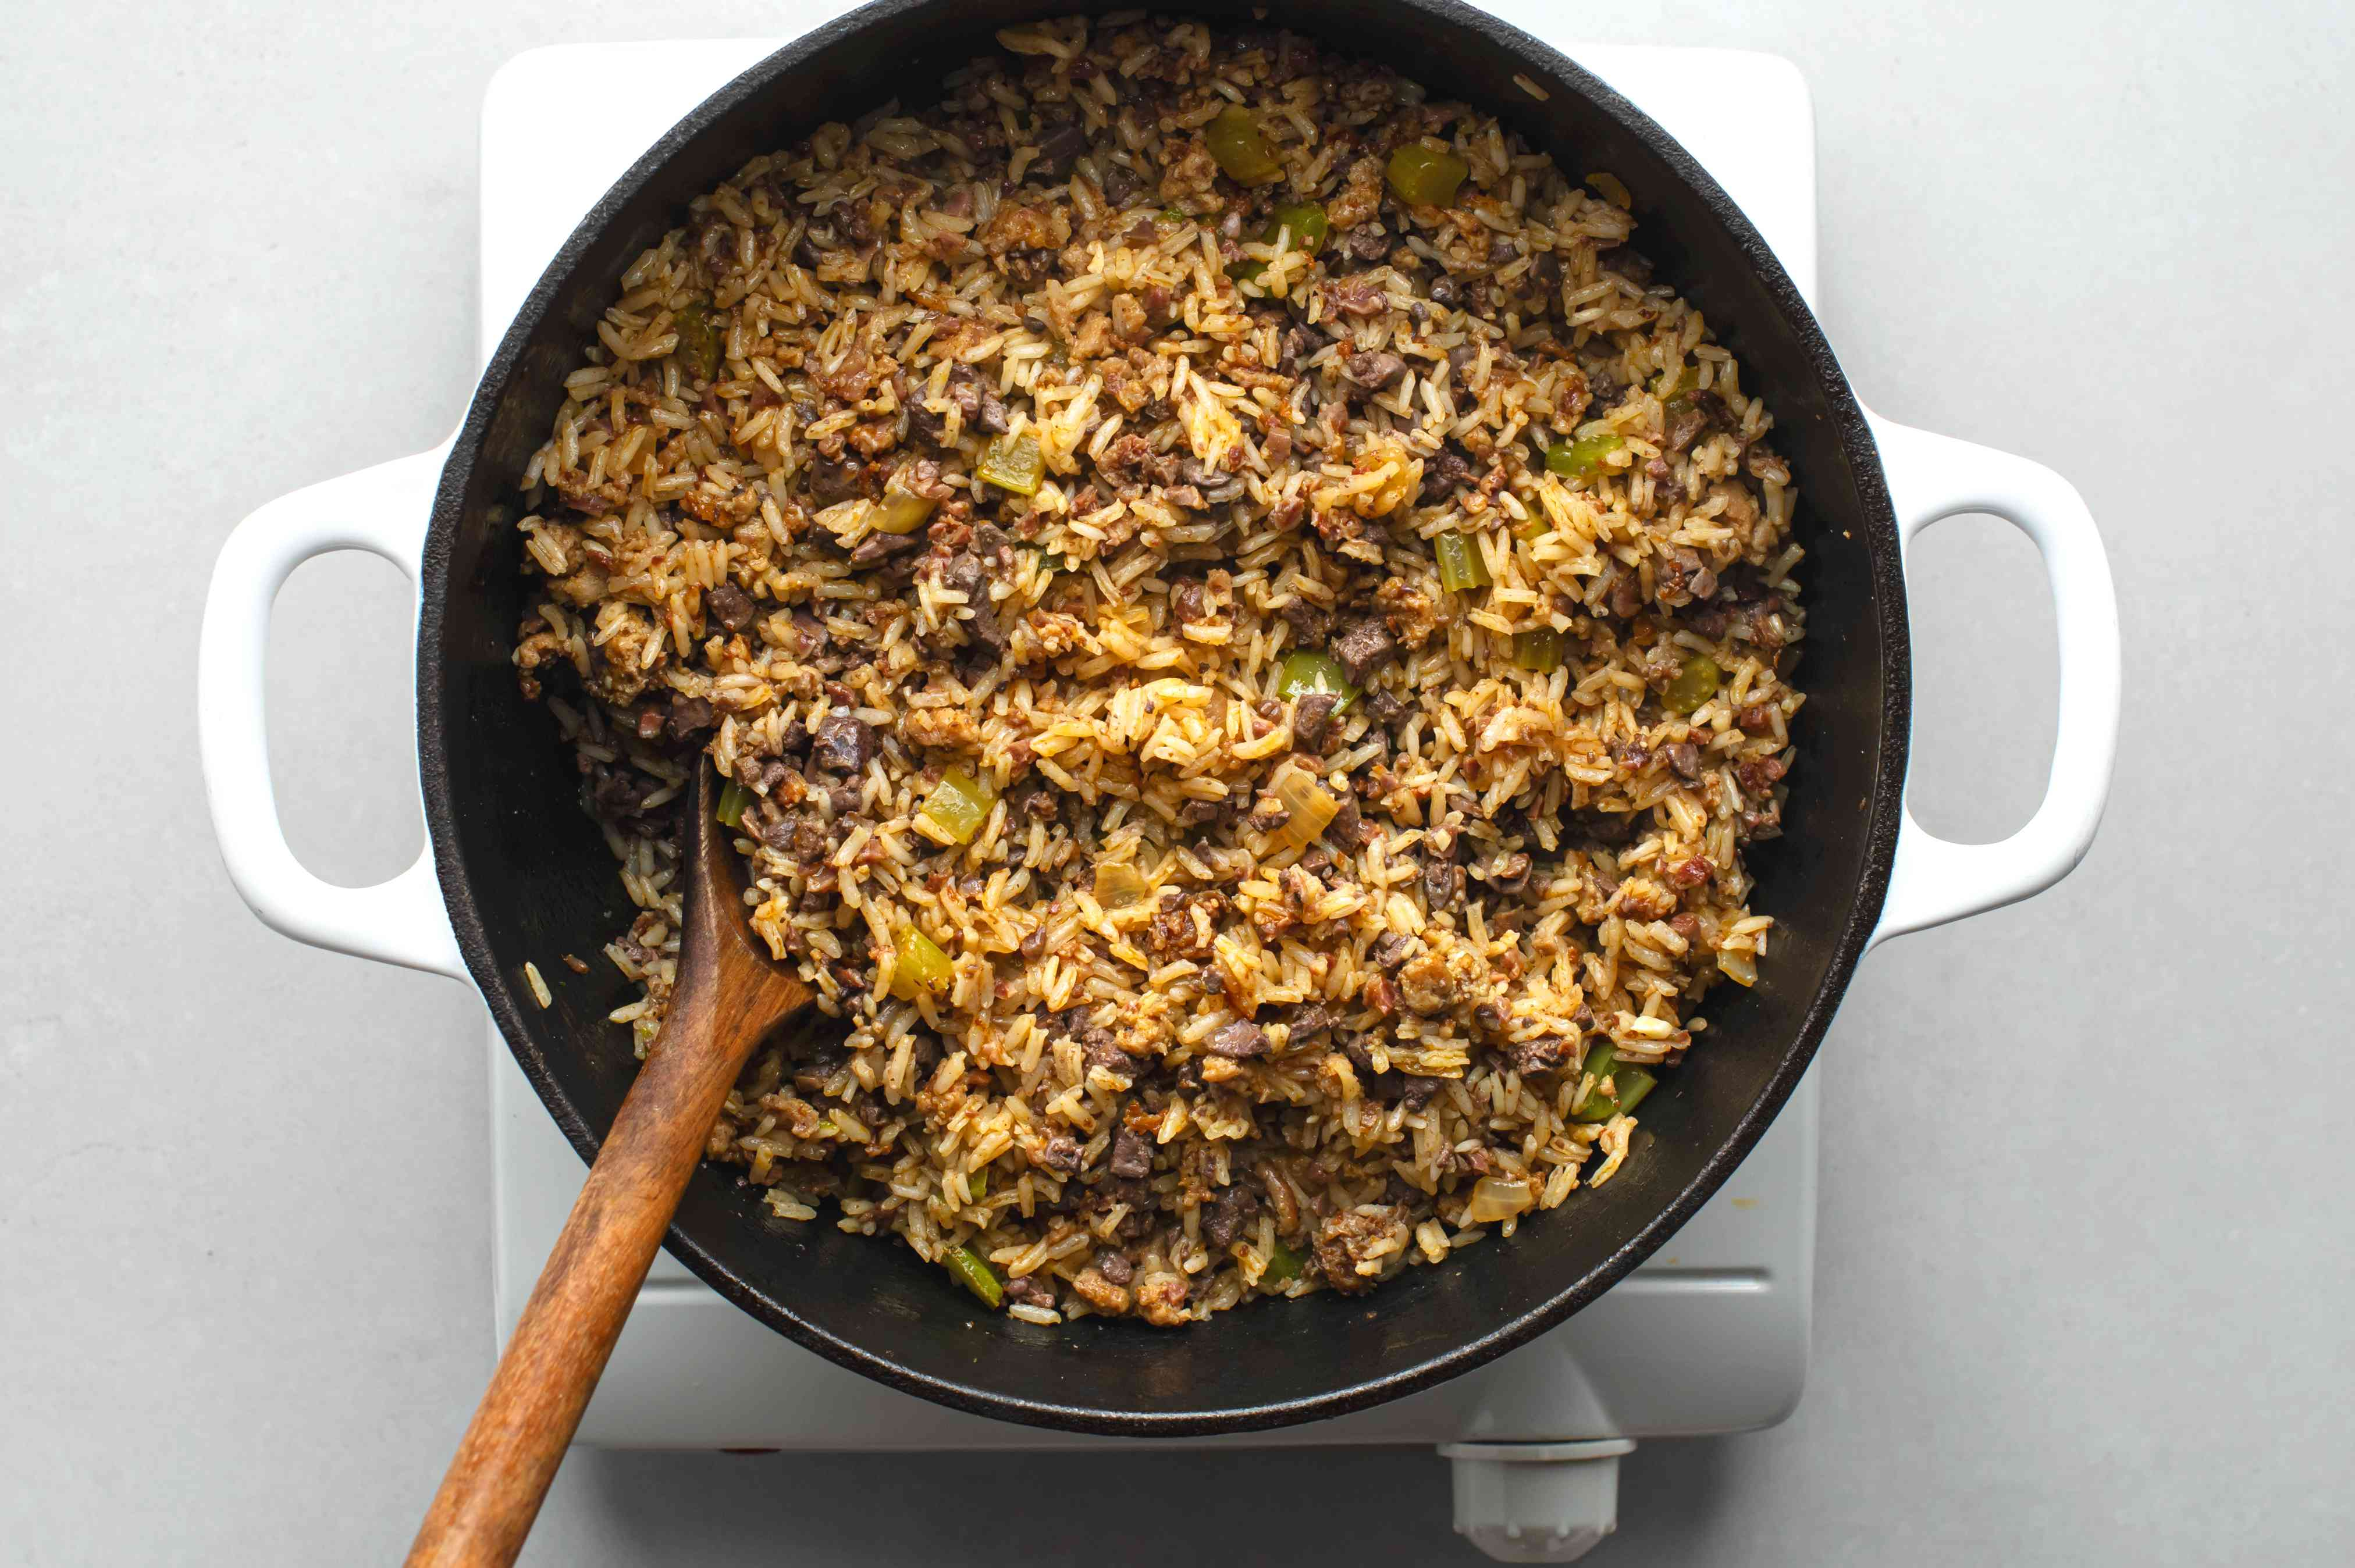 Toss minced chicken livers with the rice mixture in the Dutch oven